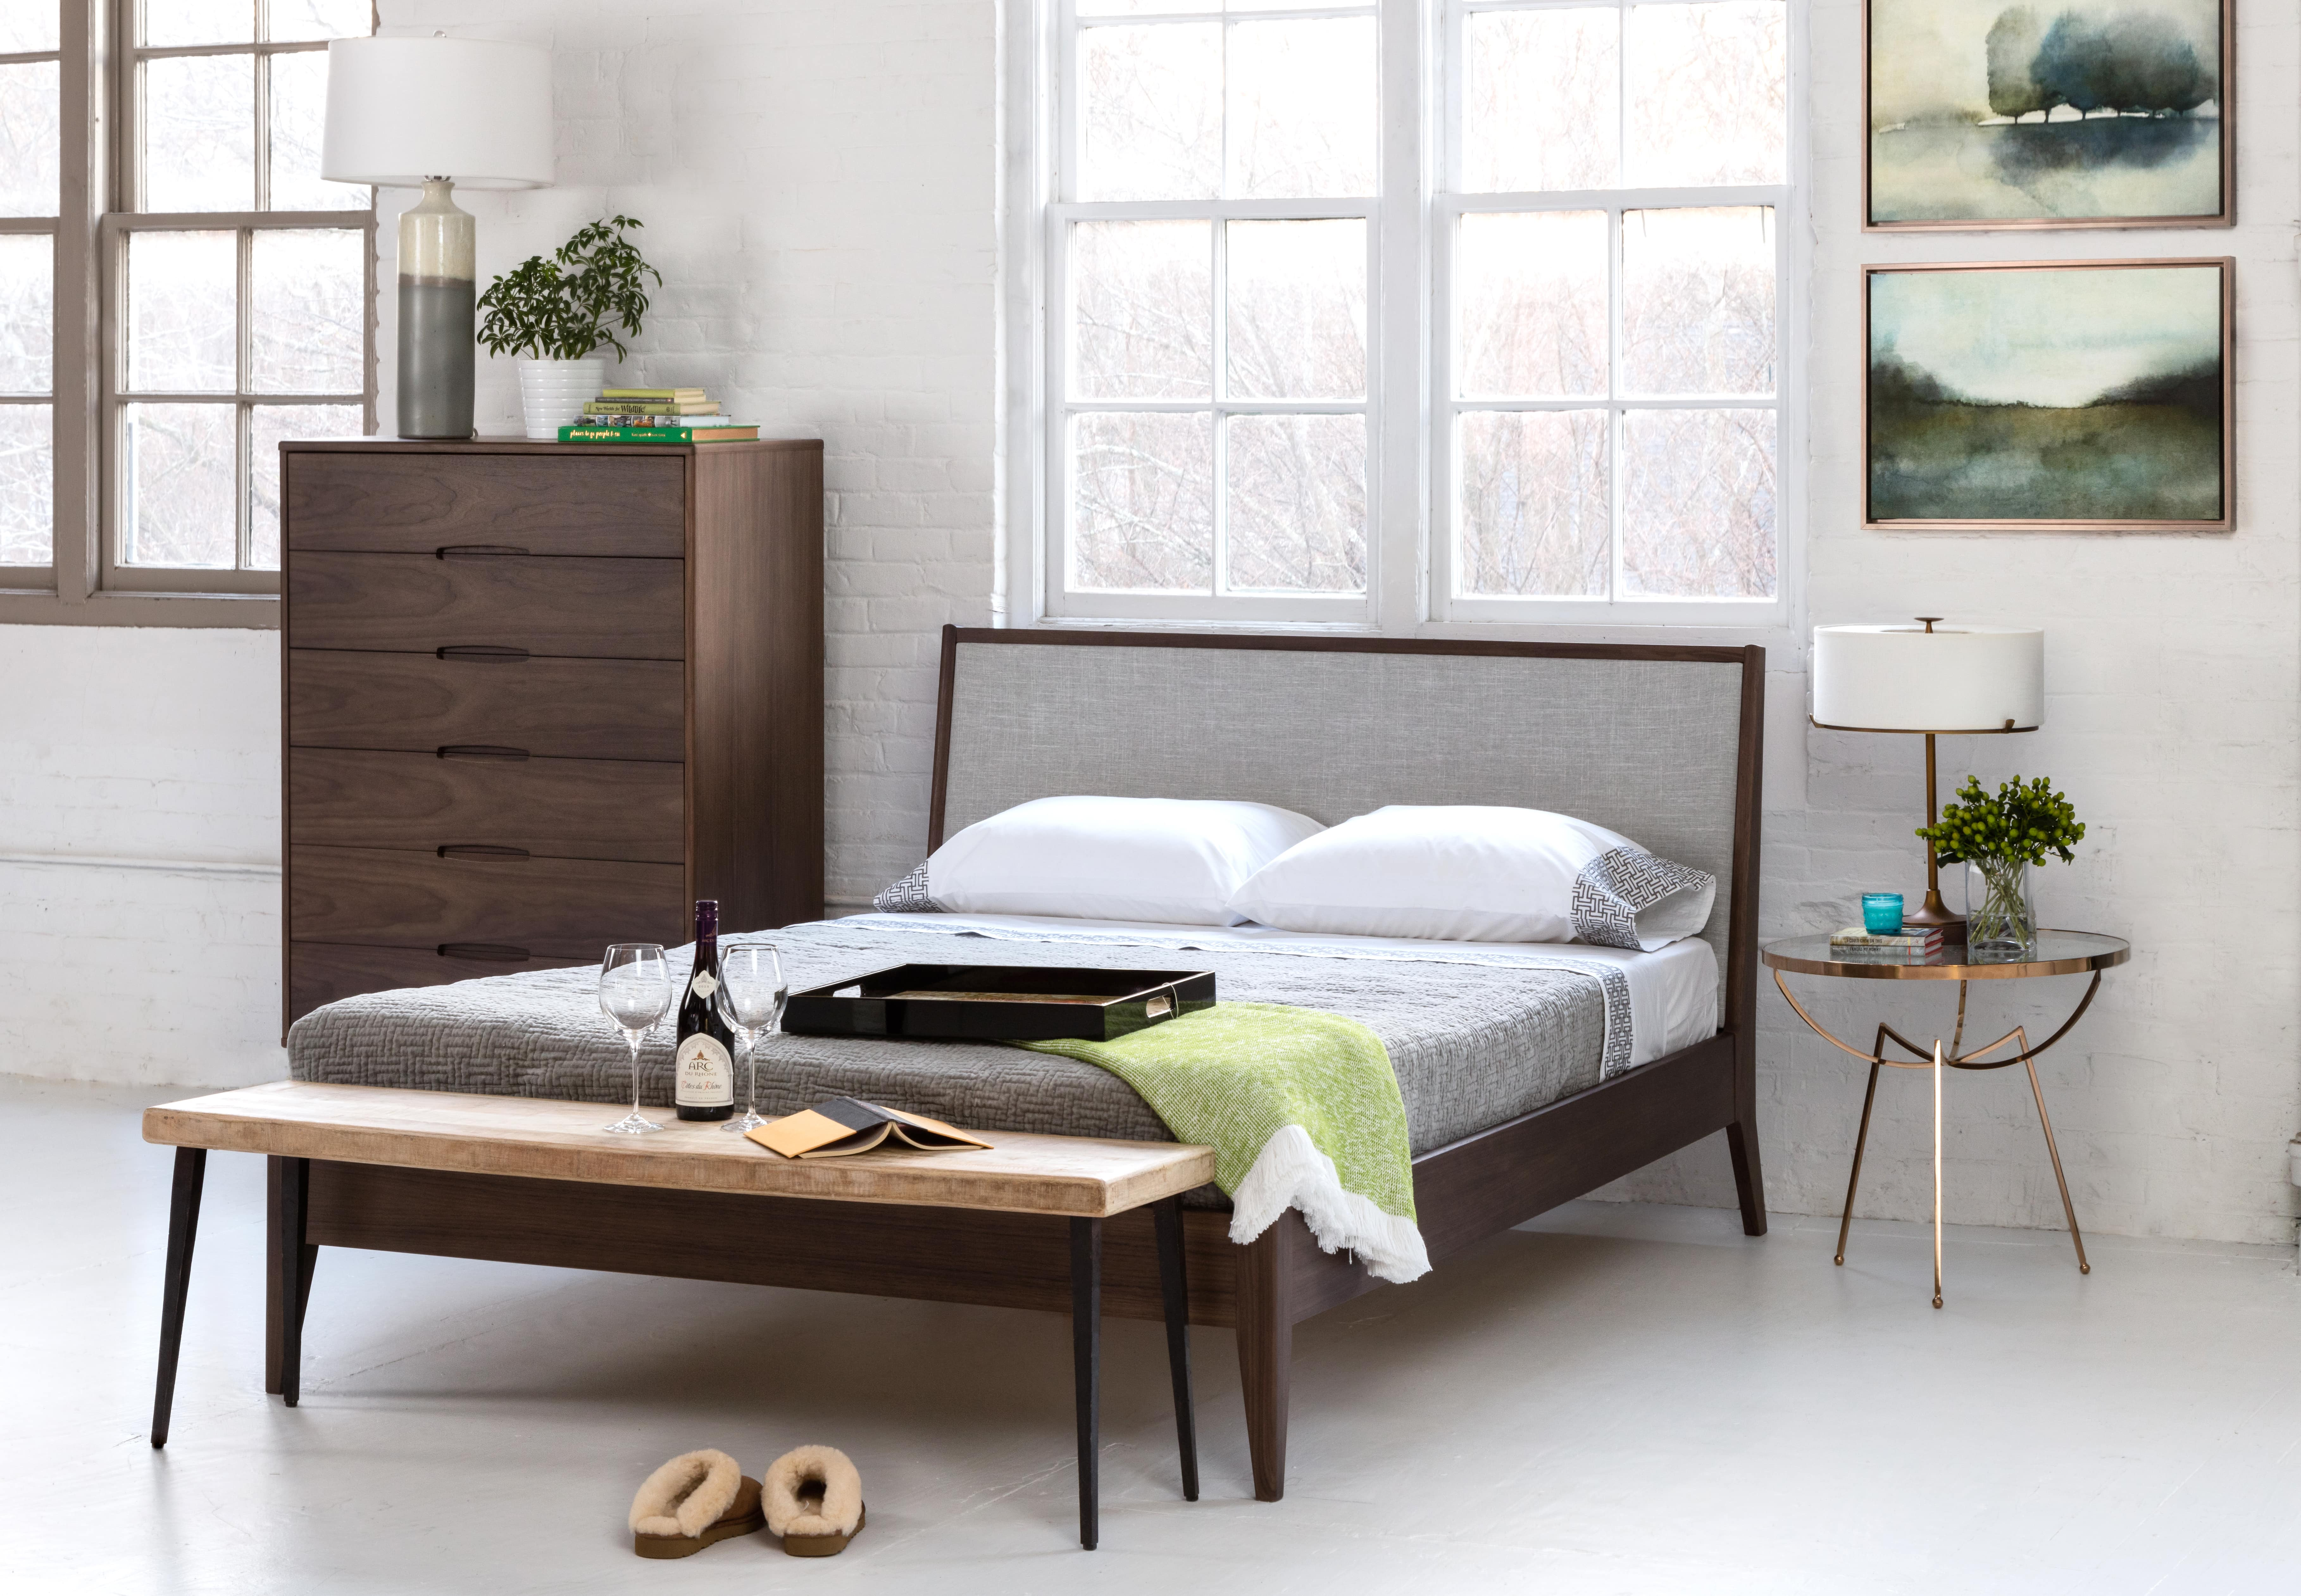 Circle Furniture - How Much Does it Cost to Furnish a Bedroom?